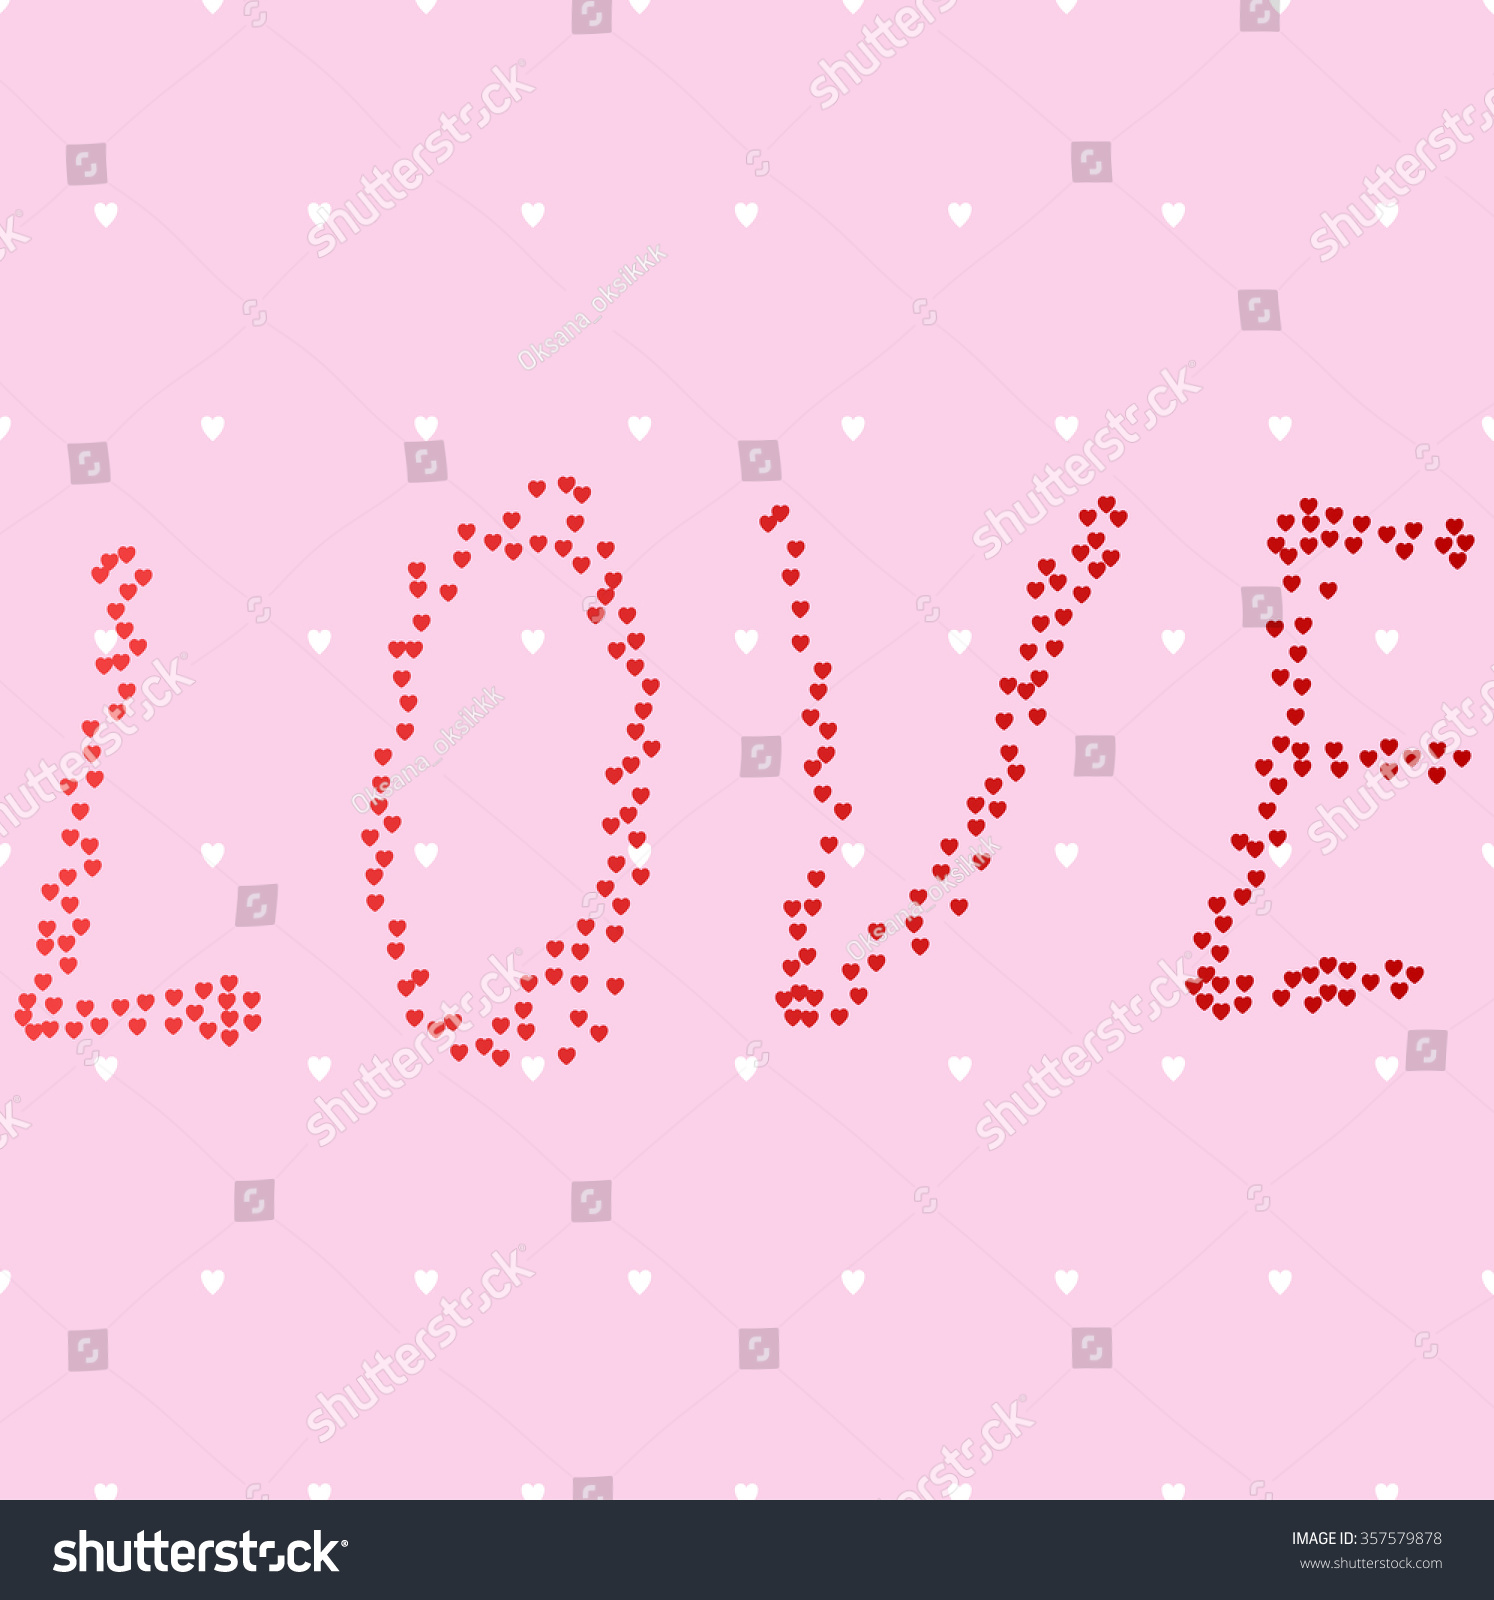 Cute love heart symbols image collections symbol and sign ideas love cute pink hearts background vector stock vector 357579878 love cute pink hearts background vector illustration biocorpaavc